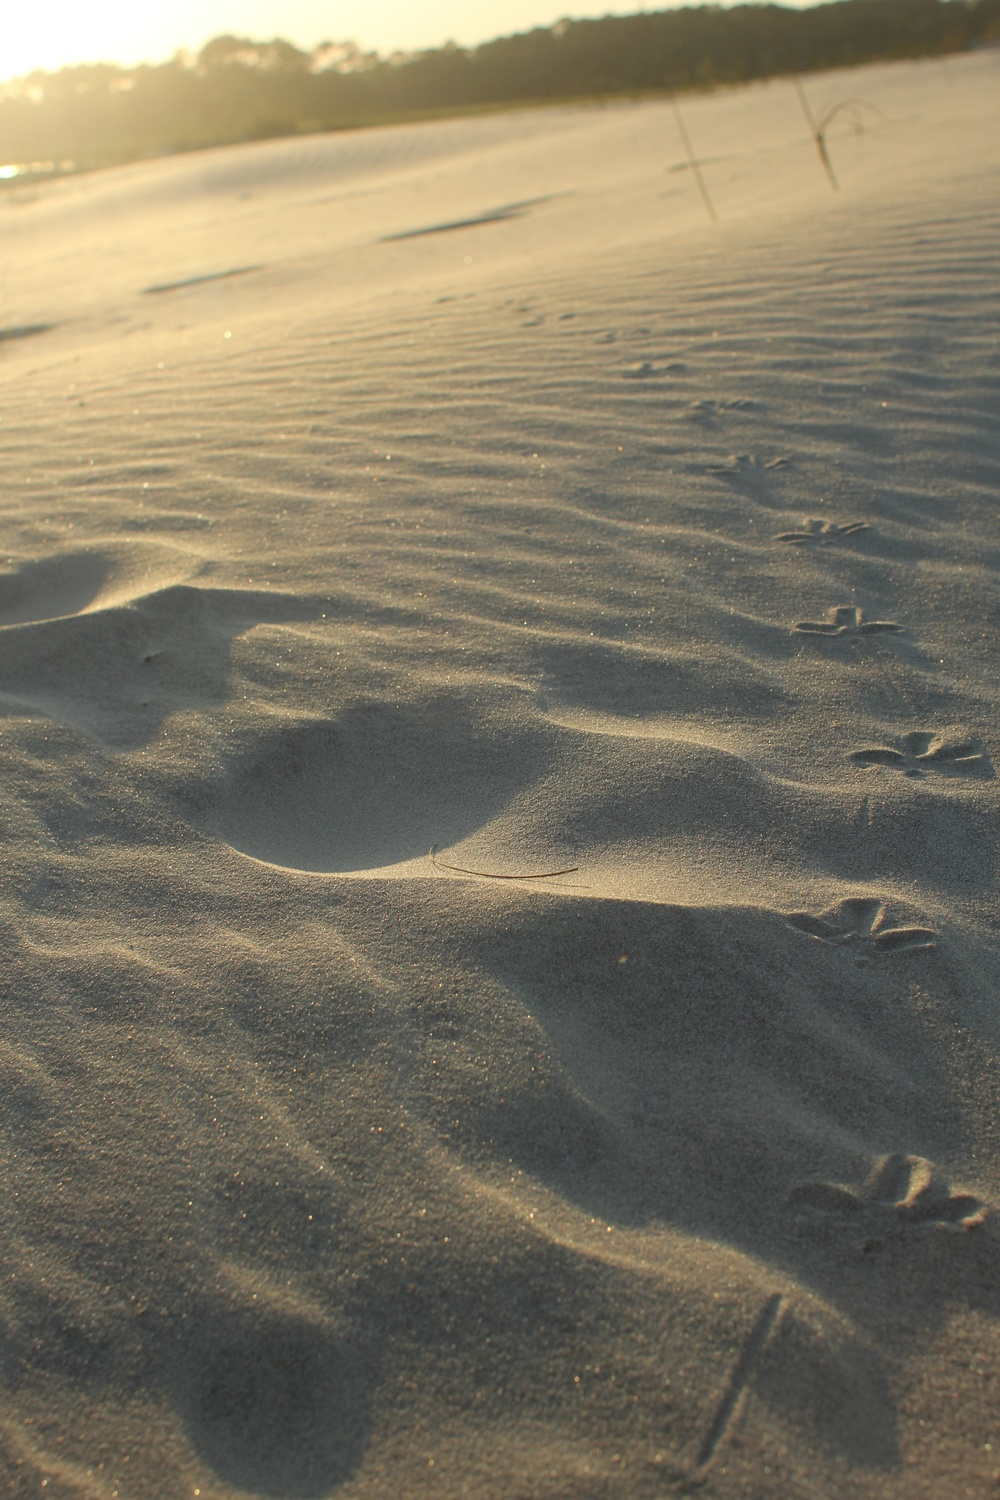 A shore bird's trail across the dunes.